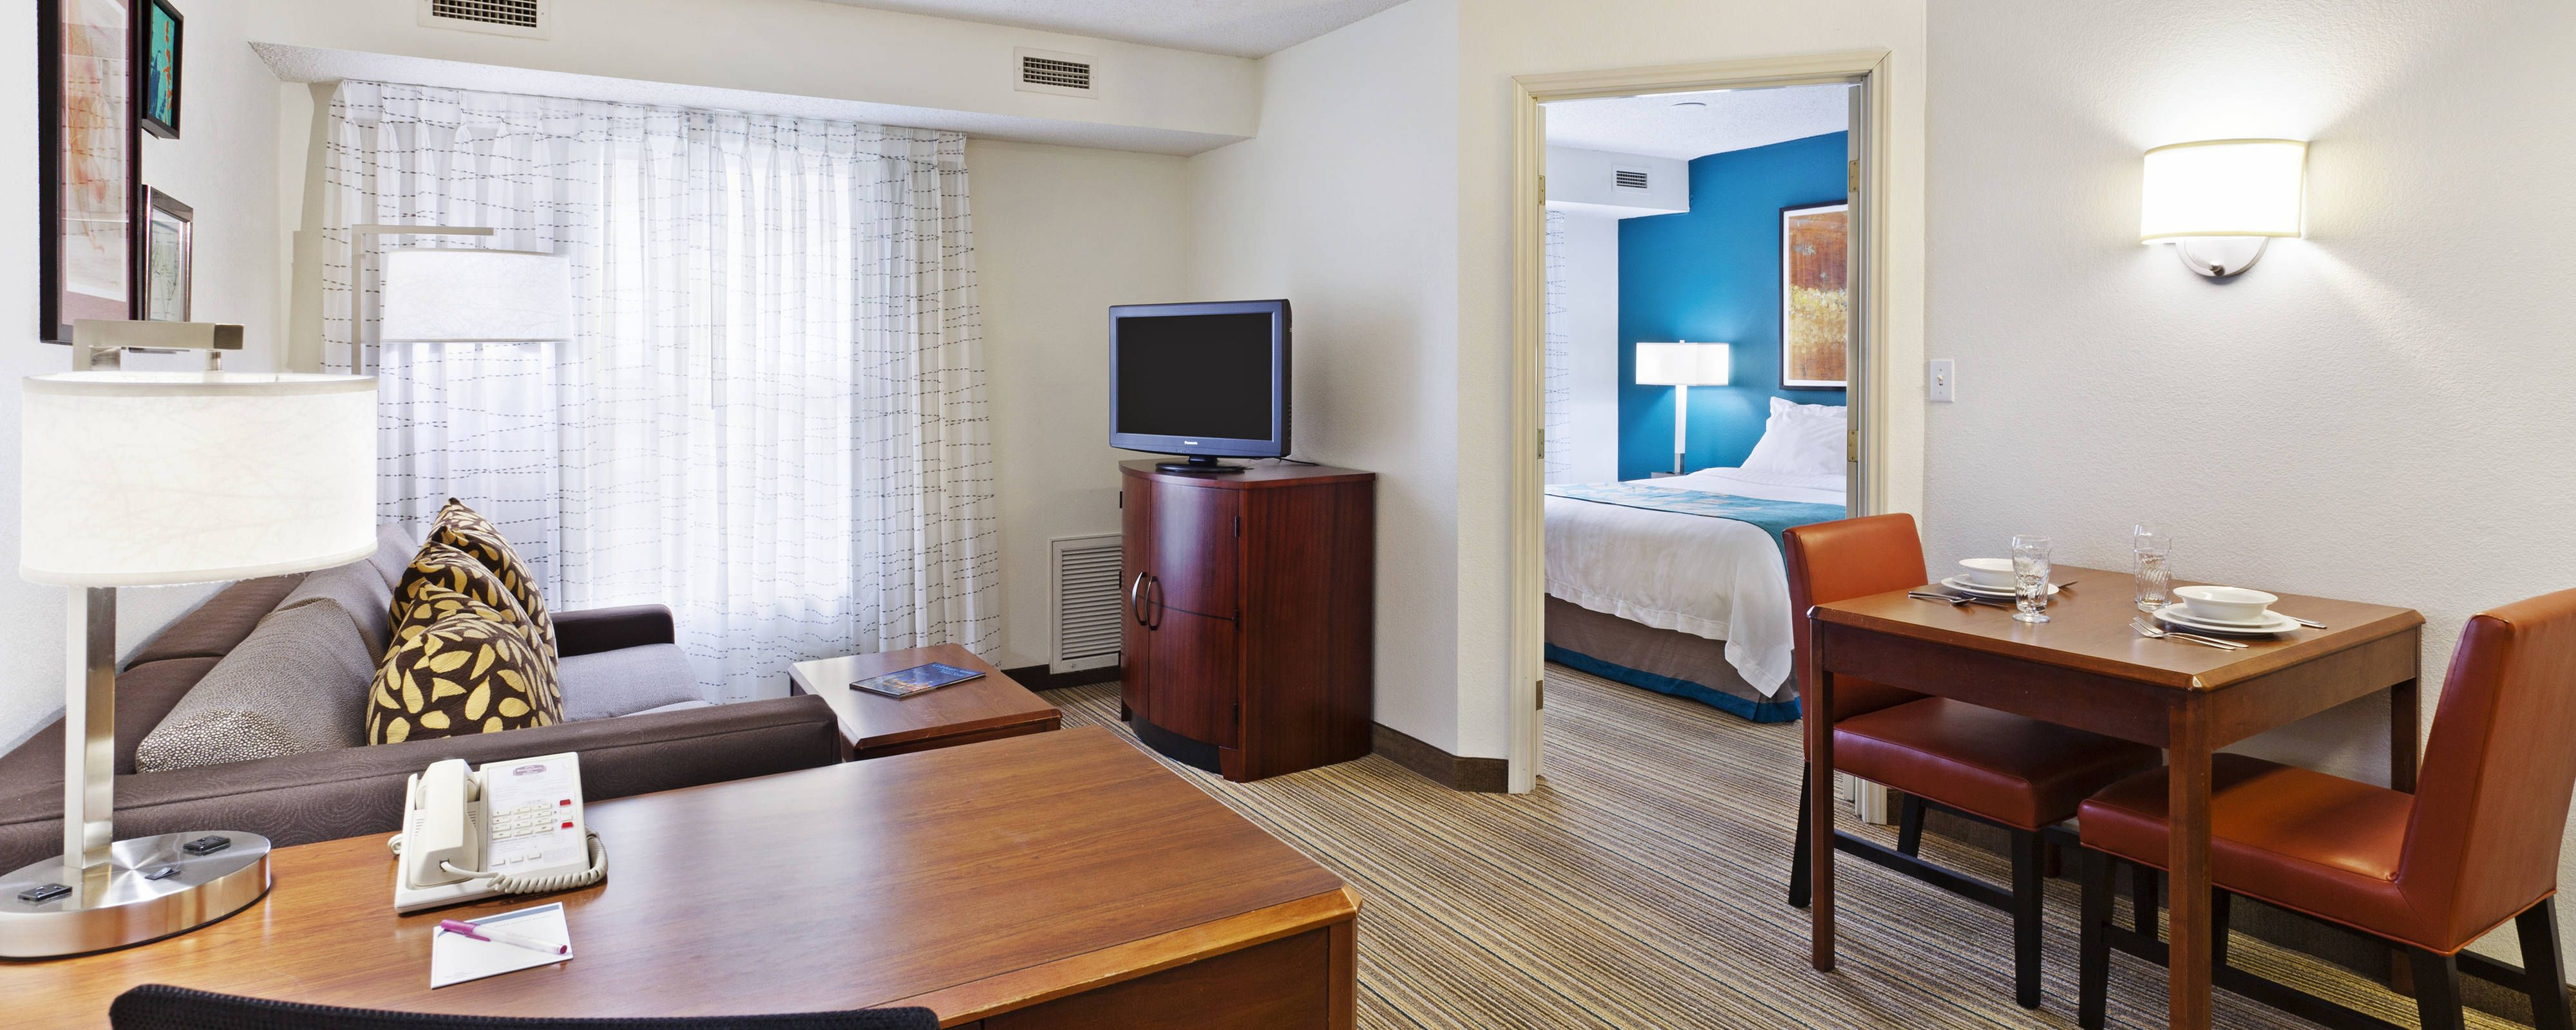 Book a short or extended stay at Residence Inn Austin